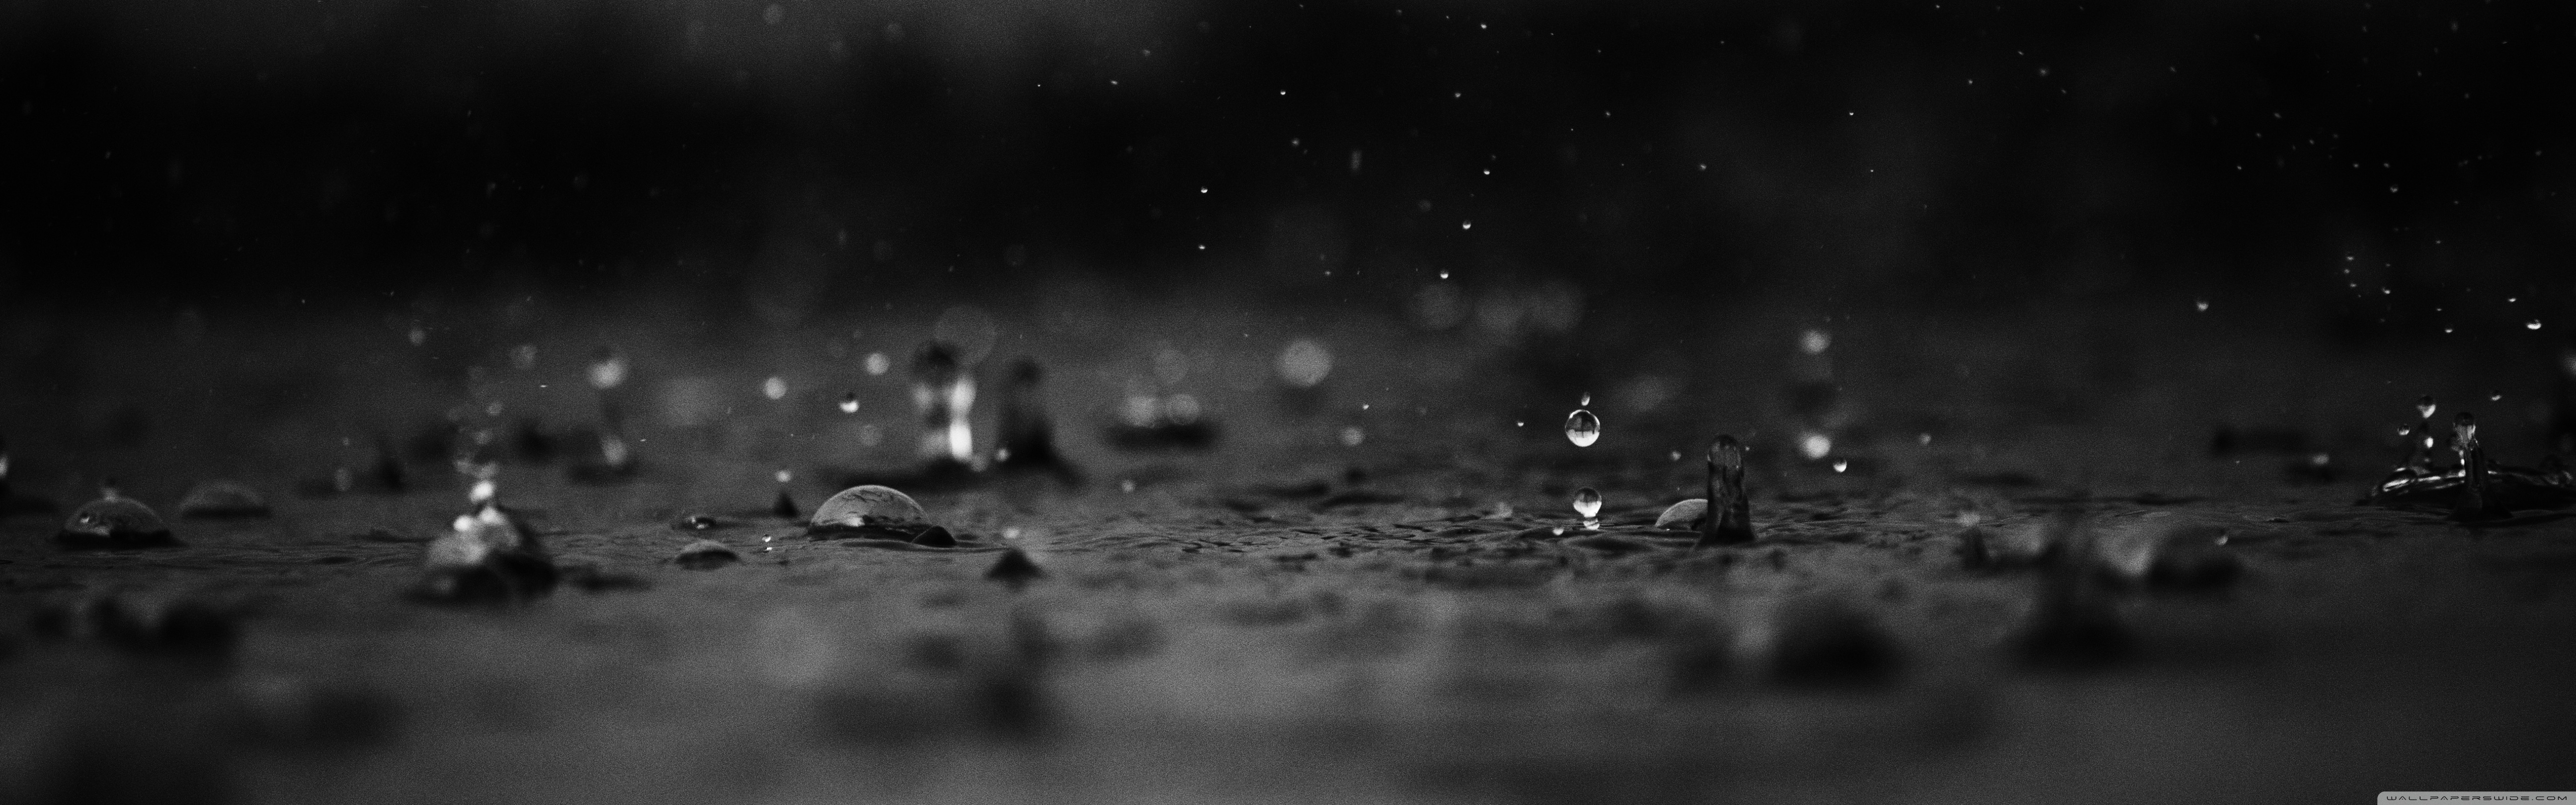 Rain Drops 4K HD Desktop Wallpaper for 4K Ultra HD TV Wide 5120x1600